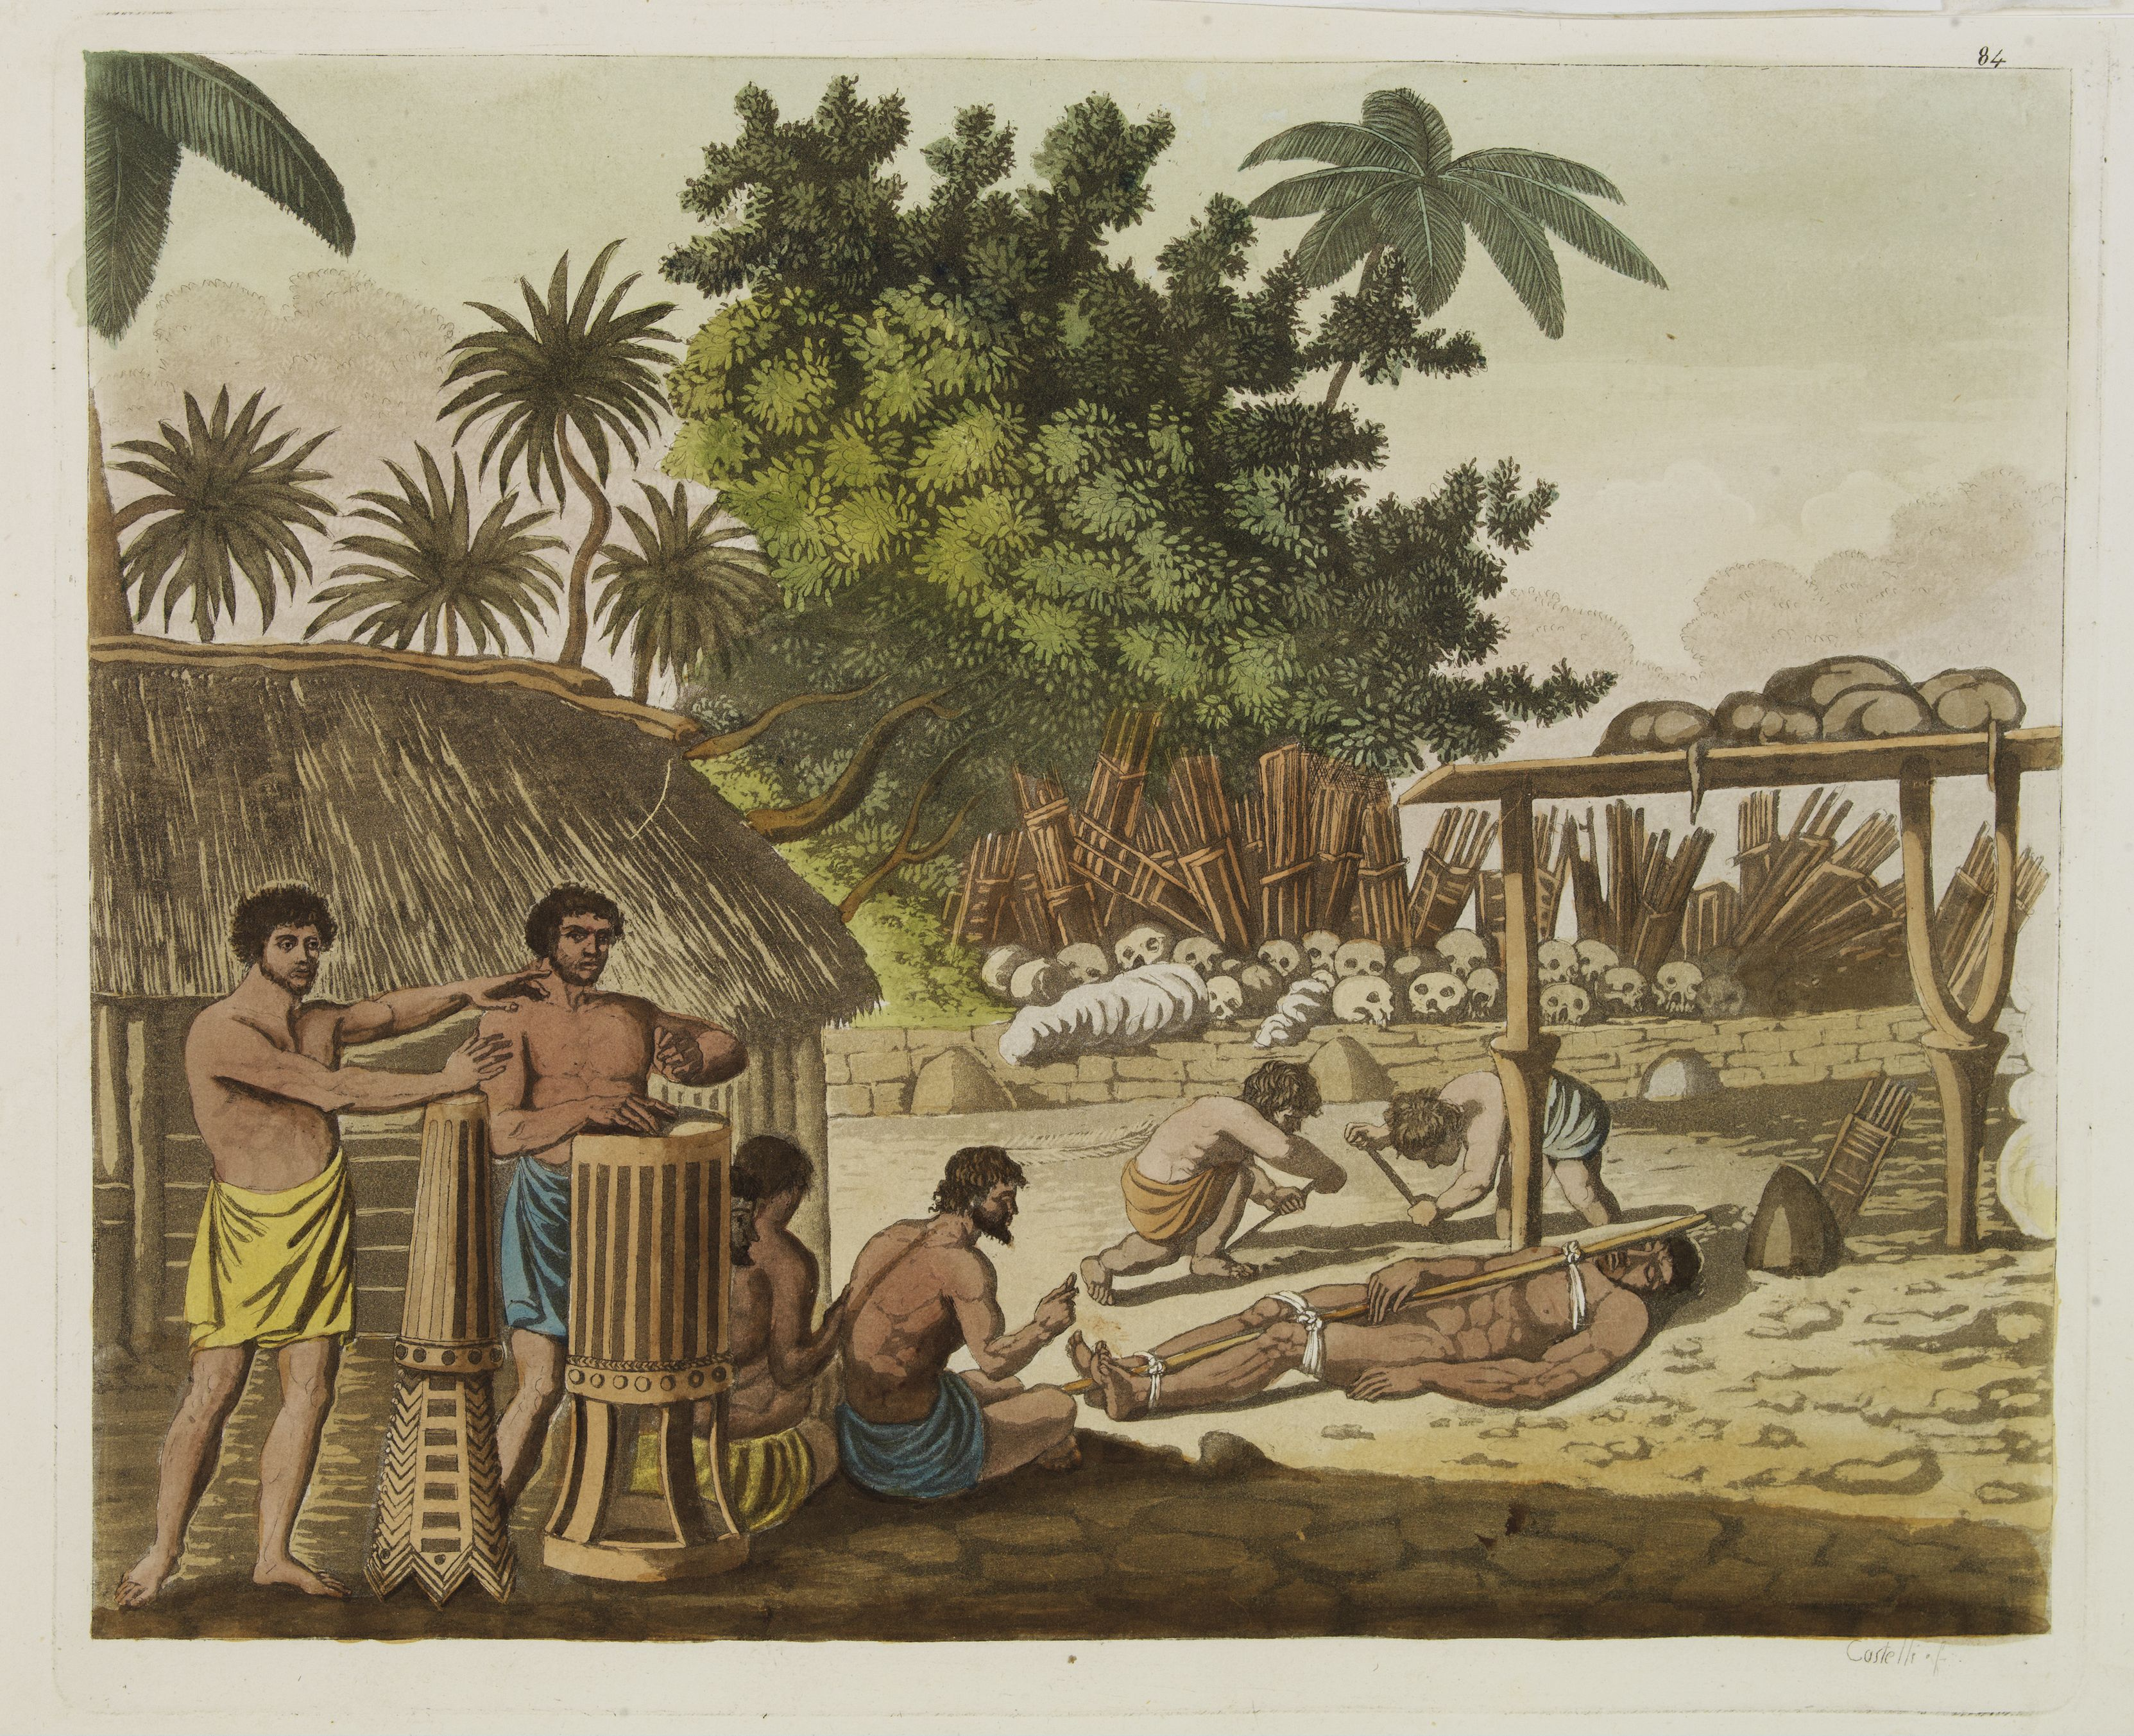 Captain Cook witnessed the ceremony of human sacrifice in Tahiti, circa 1773. Published 1827.